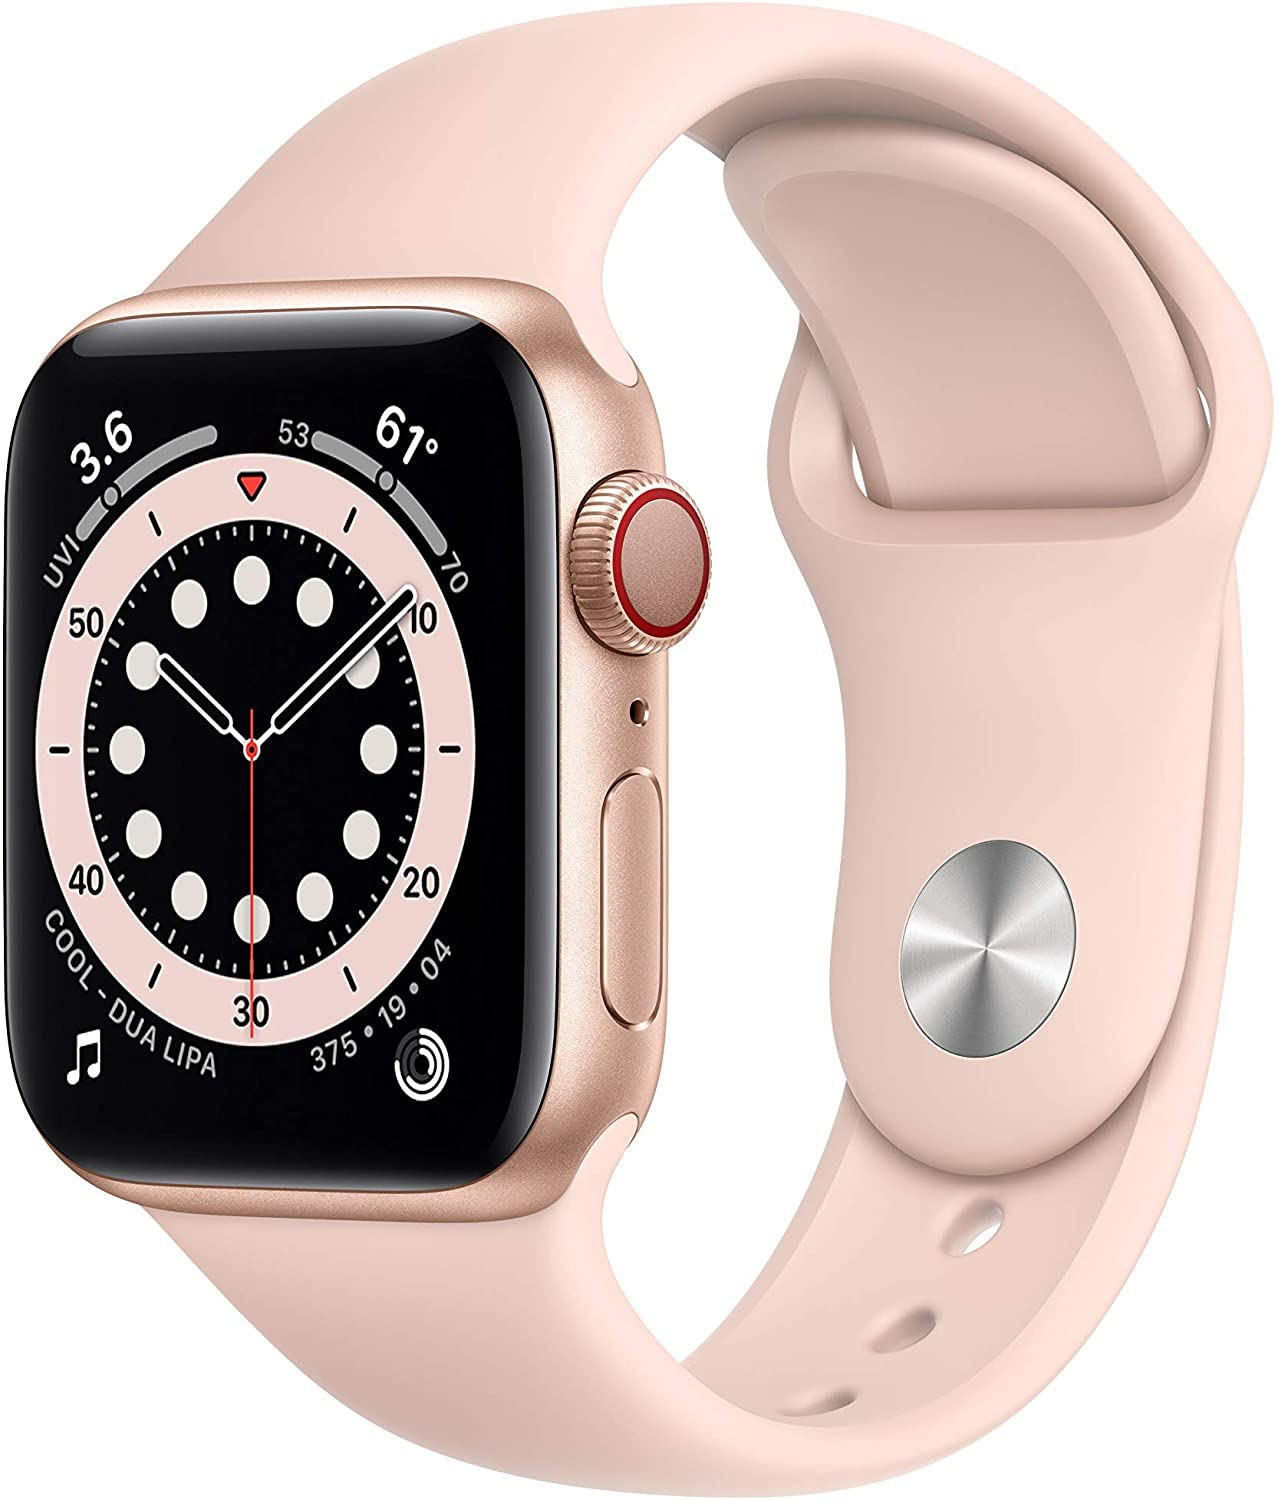 New AppleWatch Series 6 (GPS + Cellular, 40mm) - Gold Aluminum Case with Pink Sand Sport Band